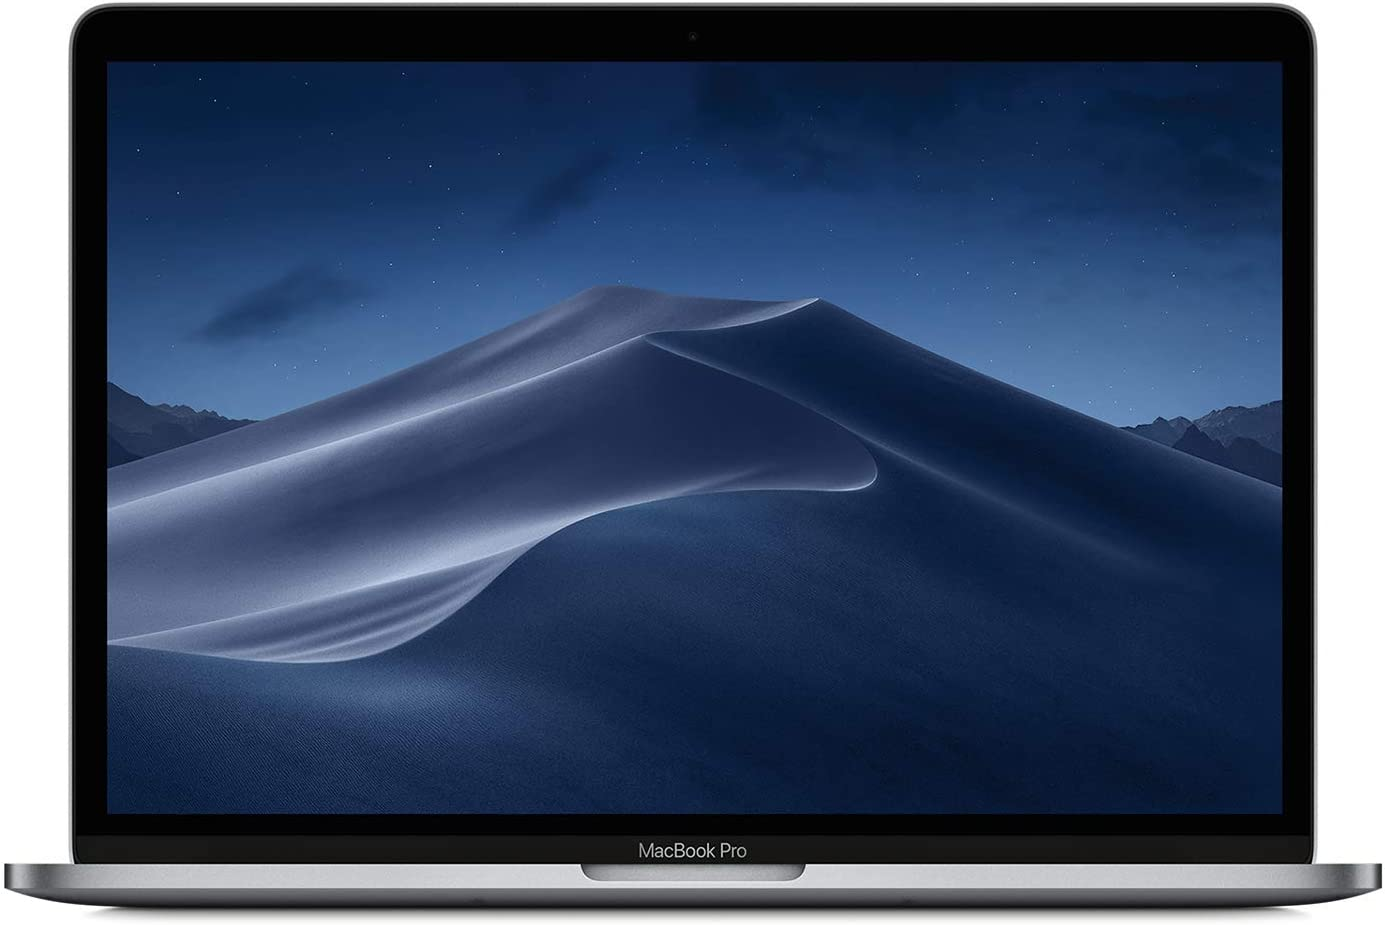 10 Best Laptops for Hacking 2020: Buyer's Guide 20